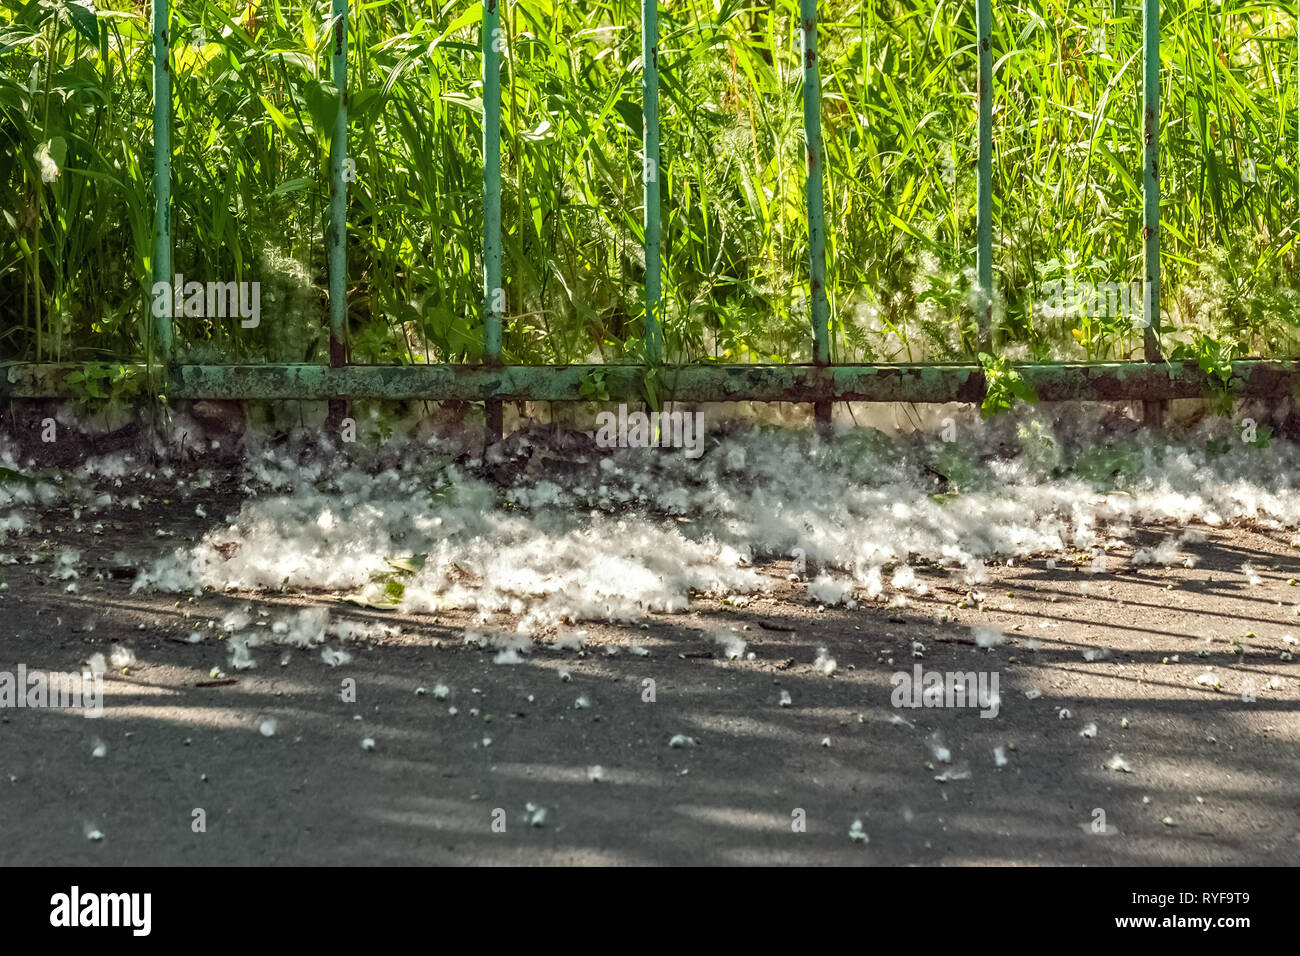 Poplar fluff fell on the pavement near the iron grille of the fence. - Stock Image